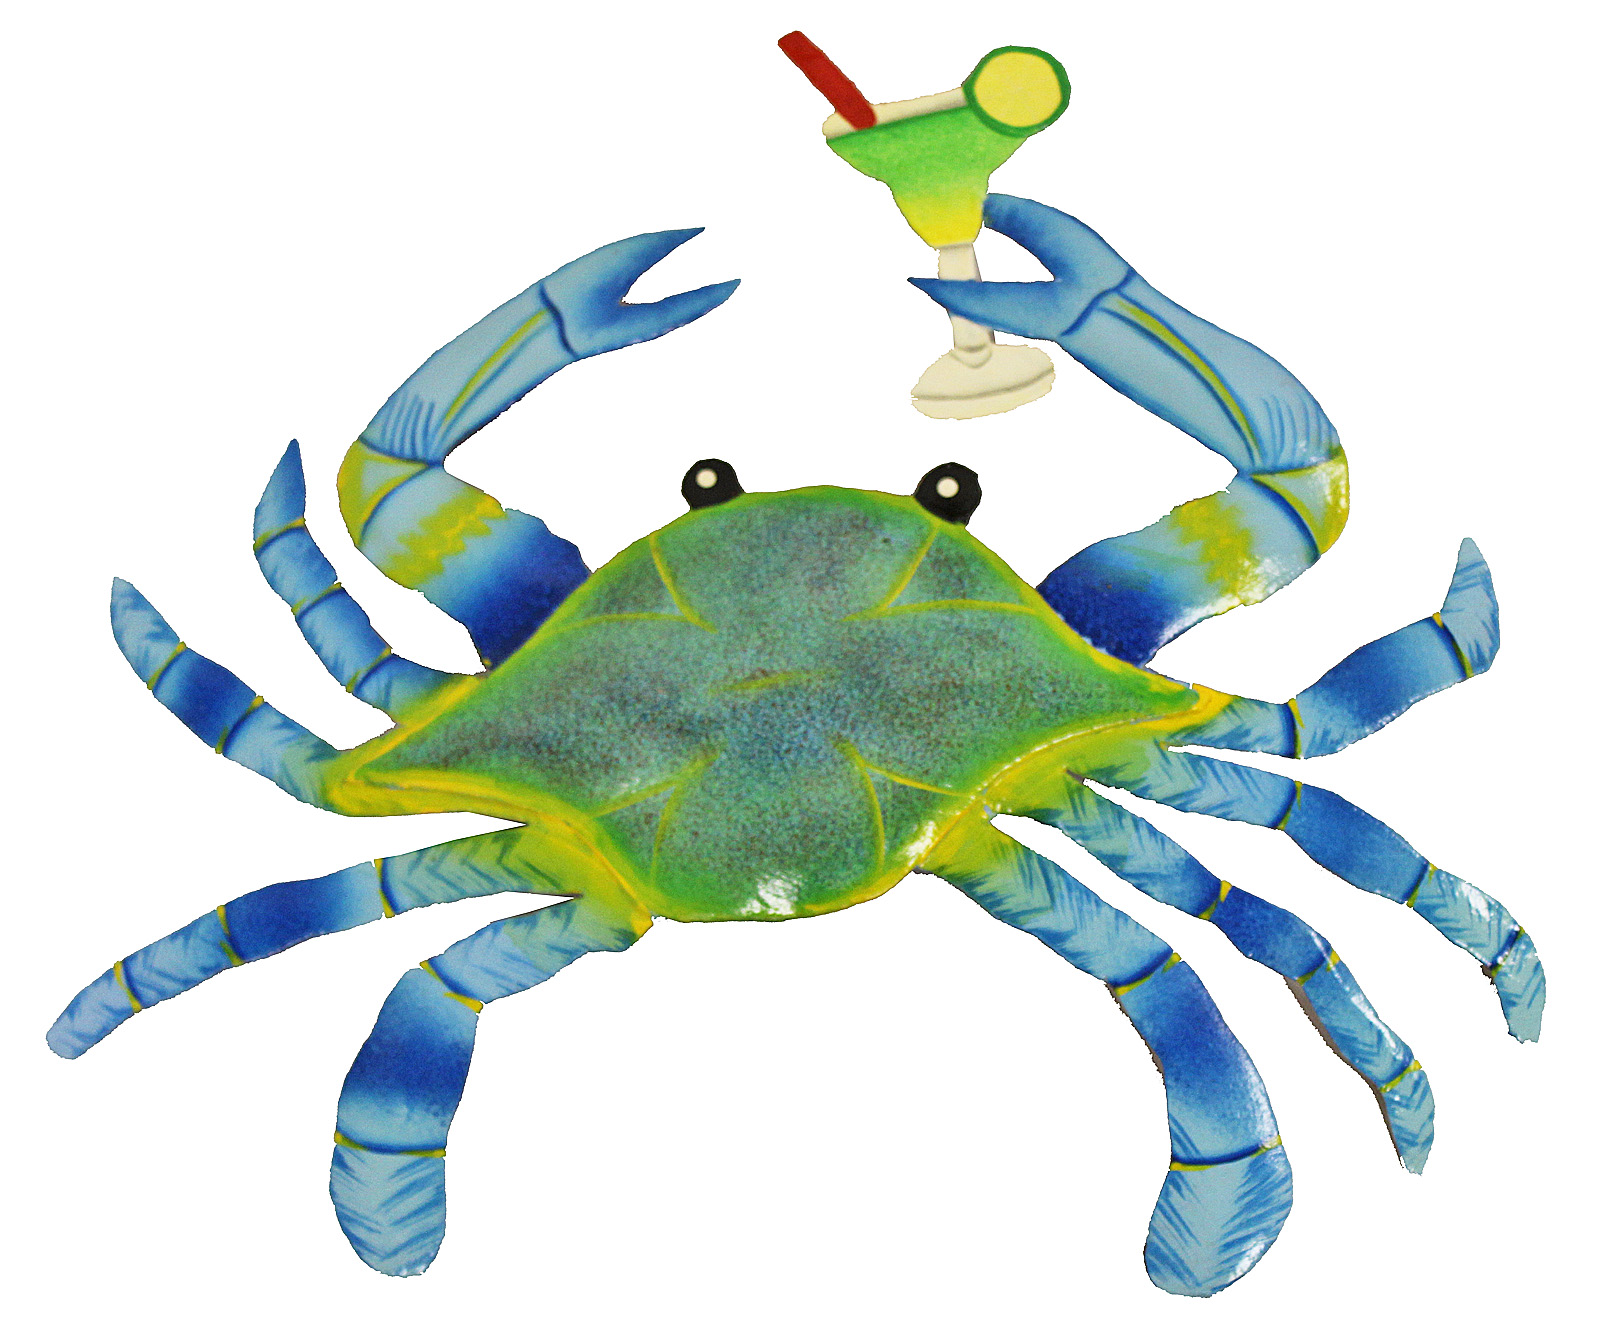 Maryland blue crab with margarita party time haitian metal art wall